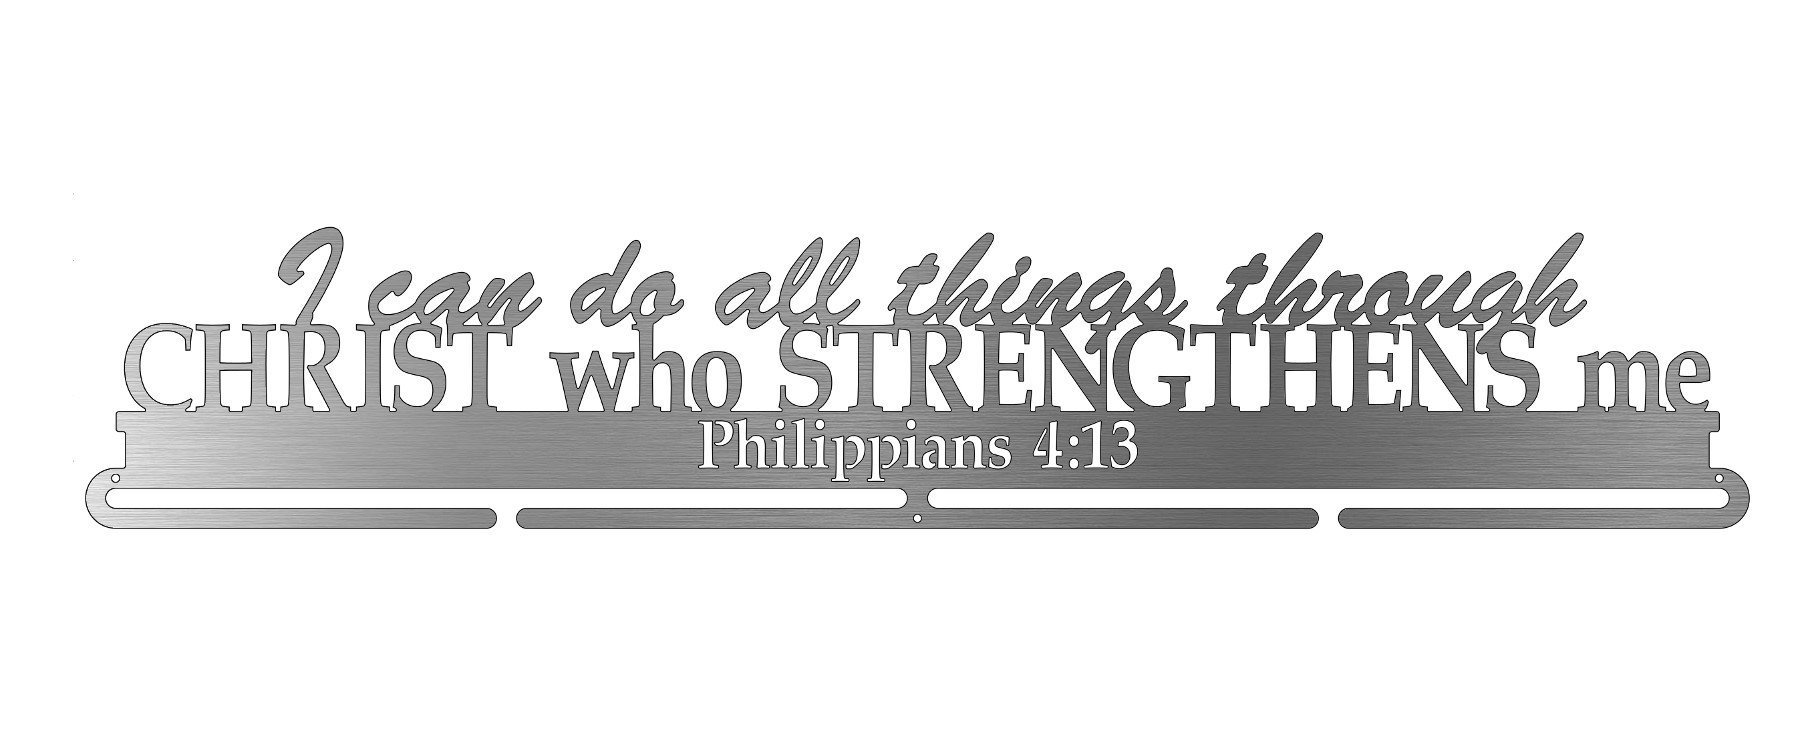 I-Can-Do-All-Things-Through-Christ-Who-Strengthens-Me-V7FUsd